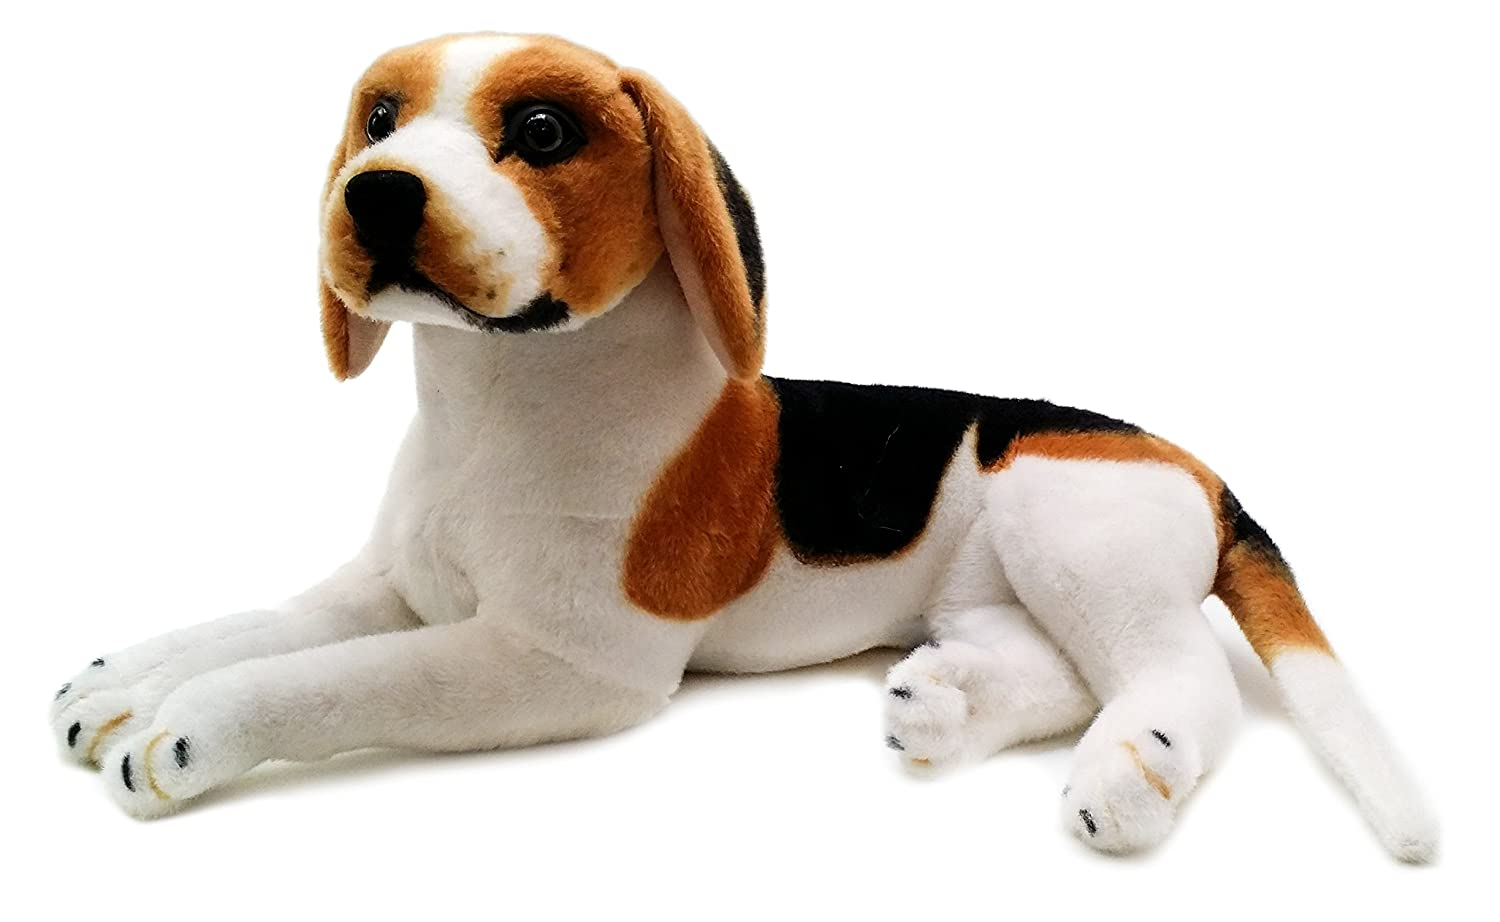 amazoncom brittany the beagle   inch large beagle dog stuffed  - amazoncom brittany the beagle   inch large beagle dog stuffed animalplush  by tiger tale toys toys  games